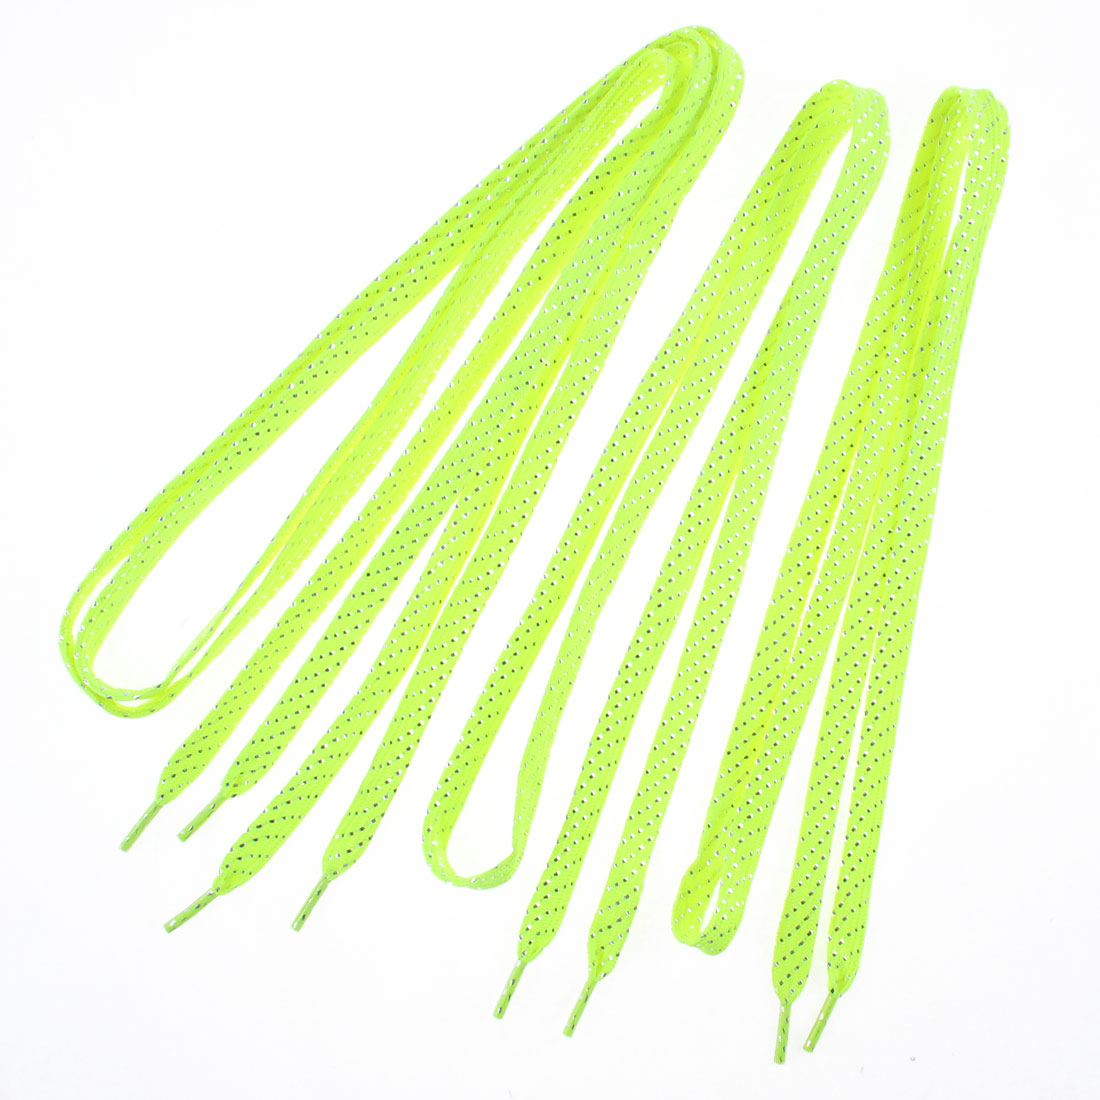 Glitter Tinsel Slanted Dots Pattern Sneakers Shoelaces Luminous Yellow 2 Pairs